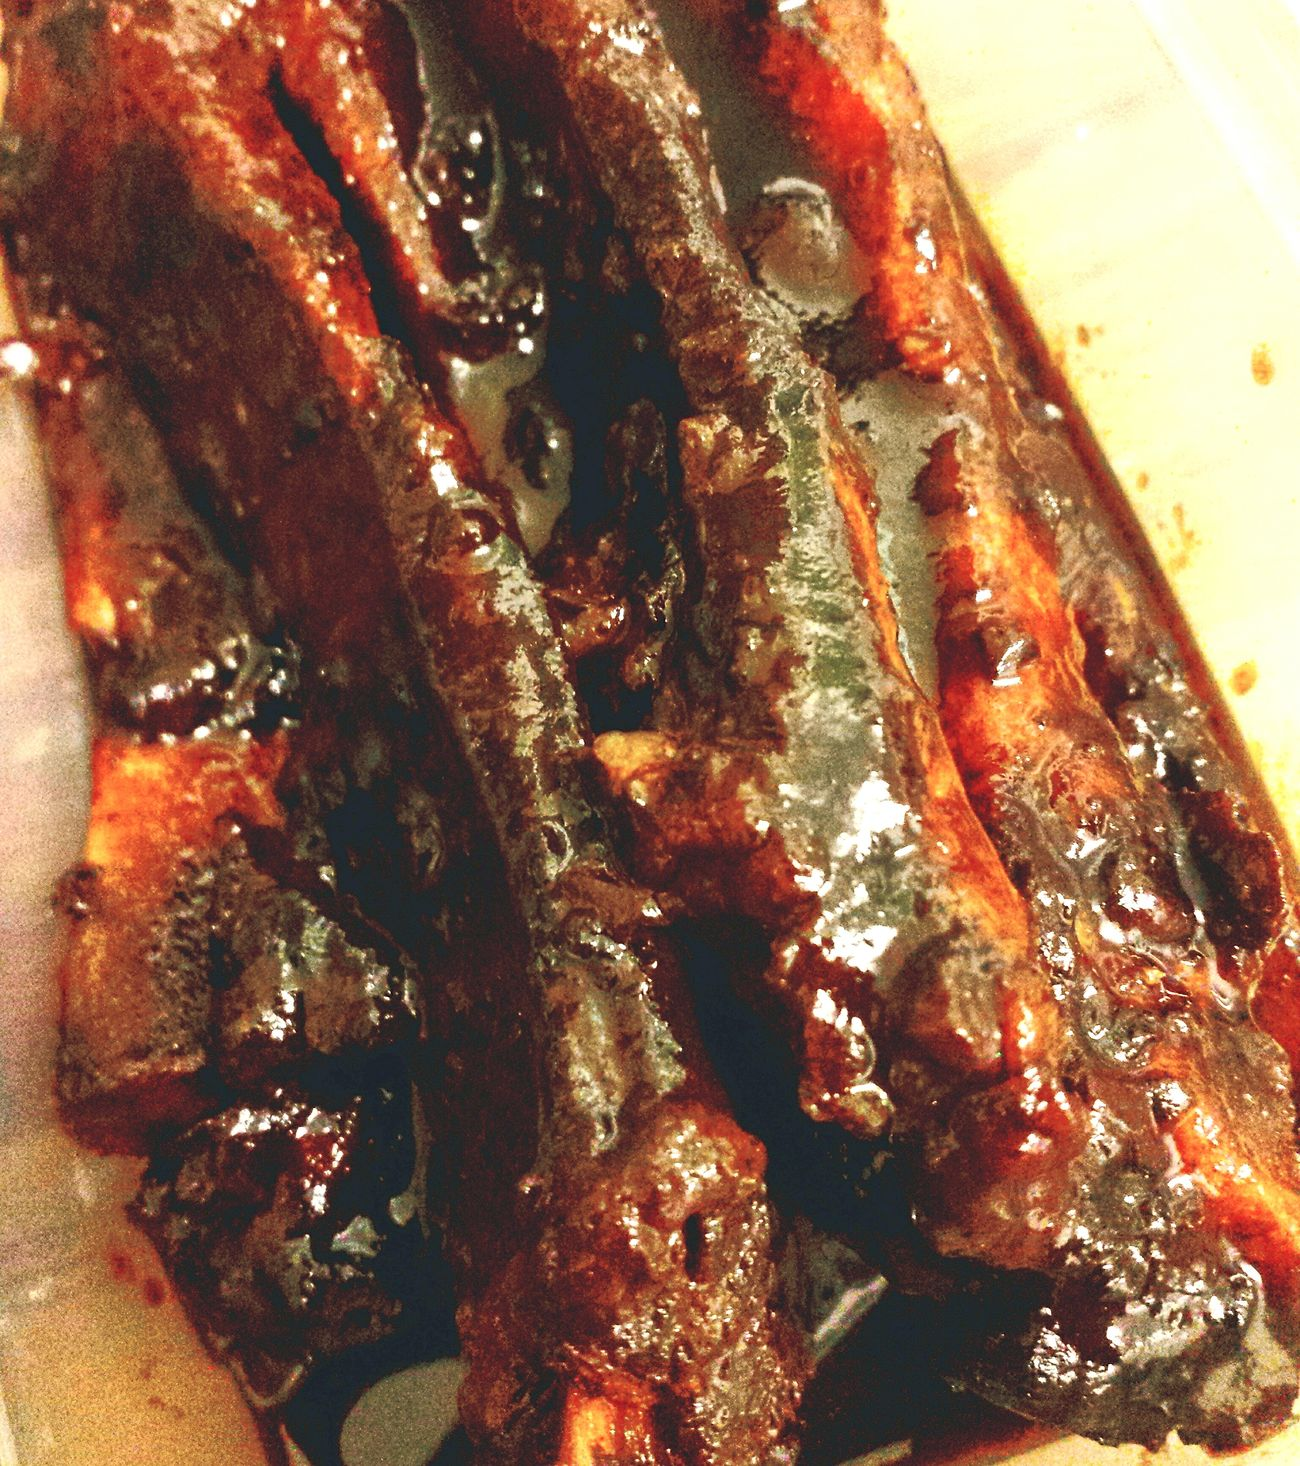 Homecooked Jackdaniels Bbq Ribs SlowCookedGoodness Slowcookedribs Delicious Foodiegram Foodieseyeem